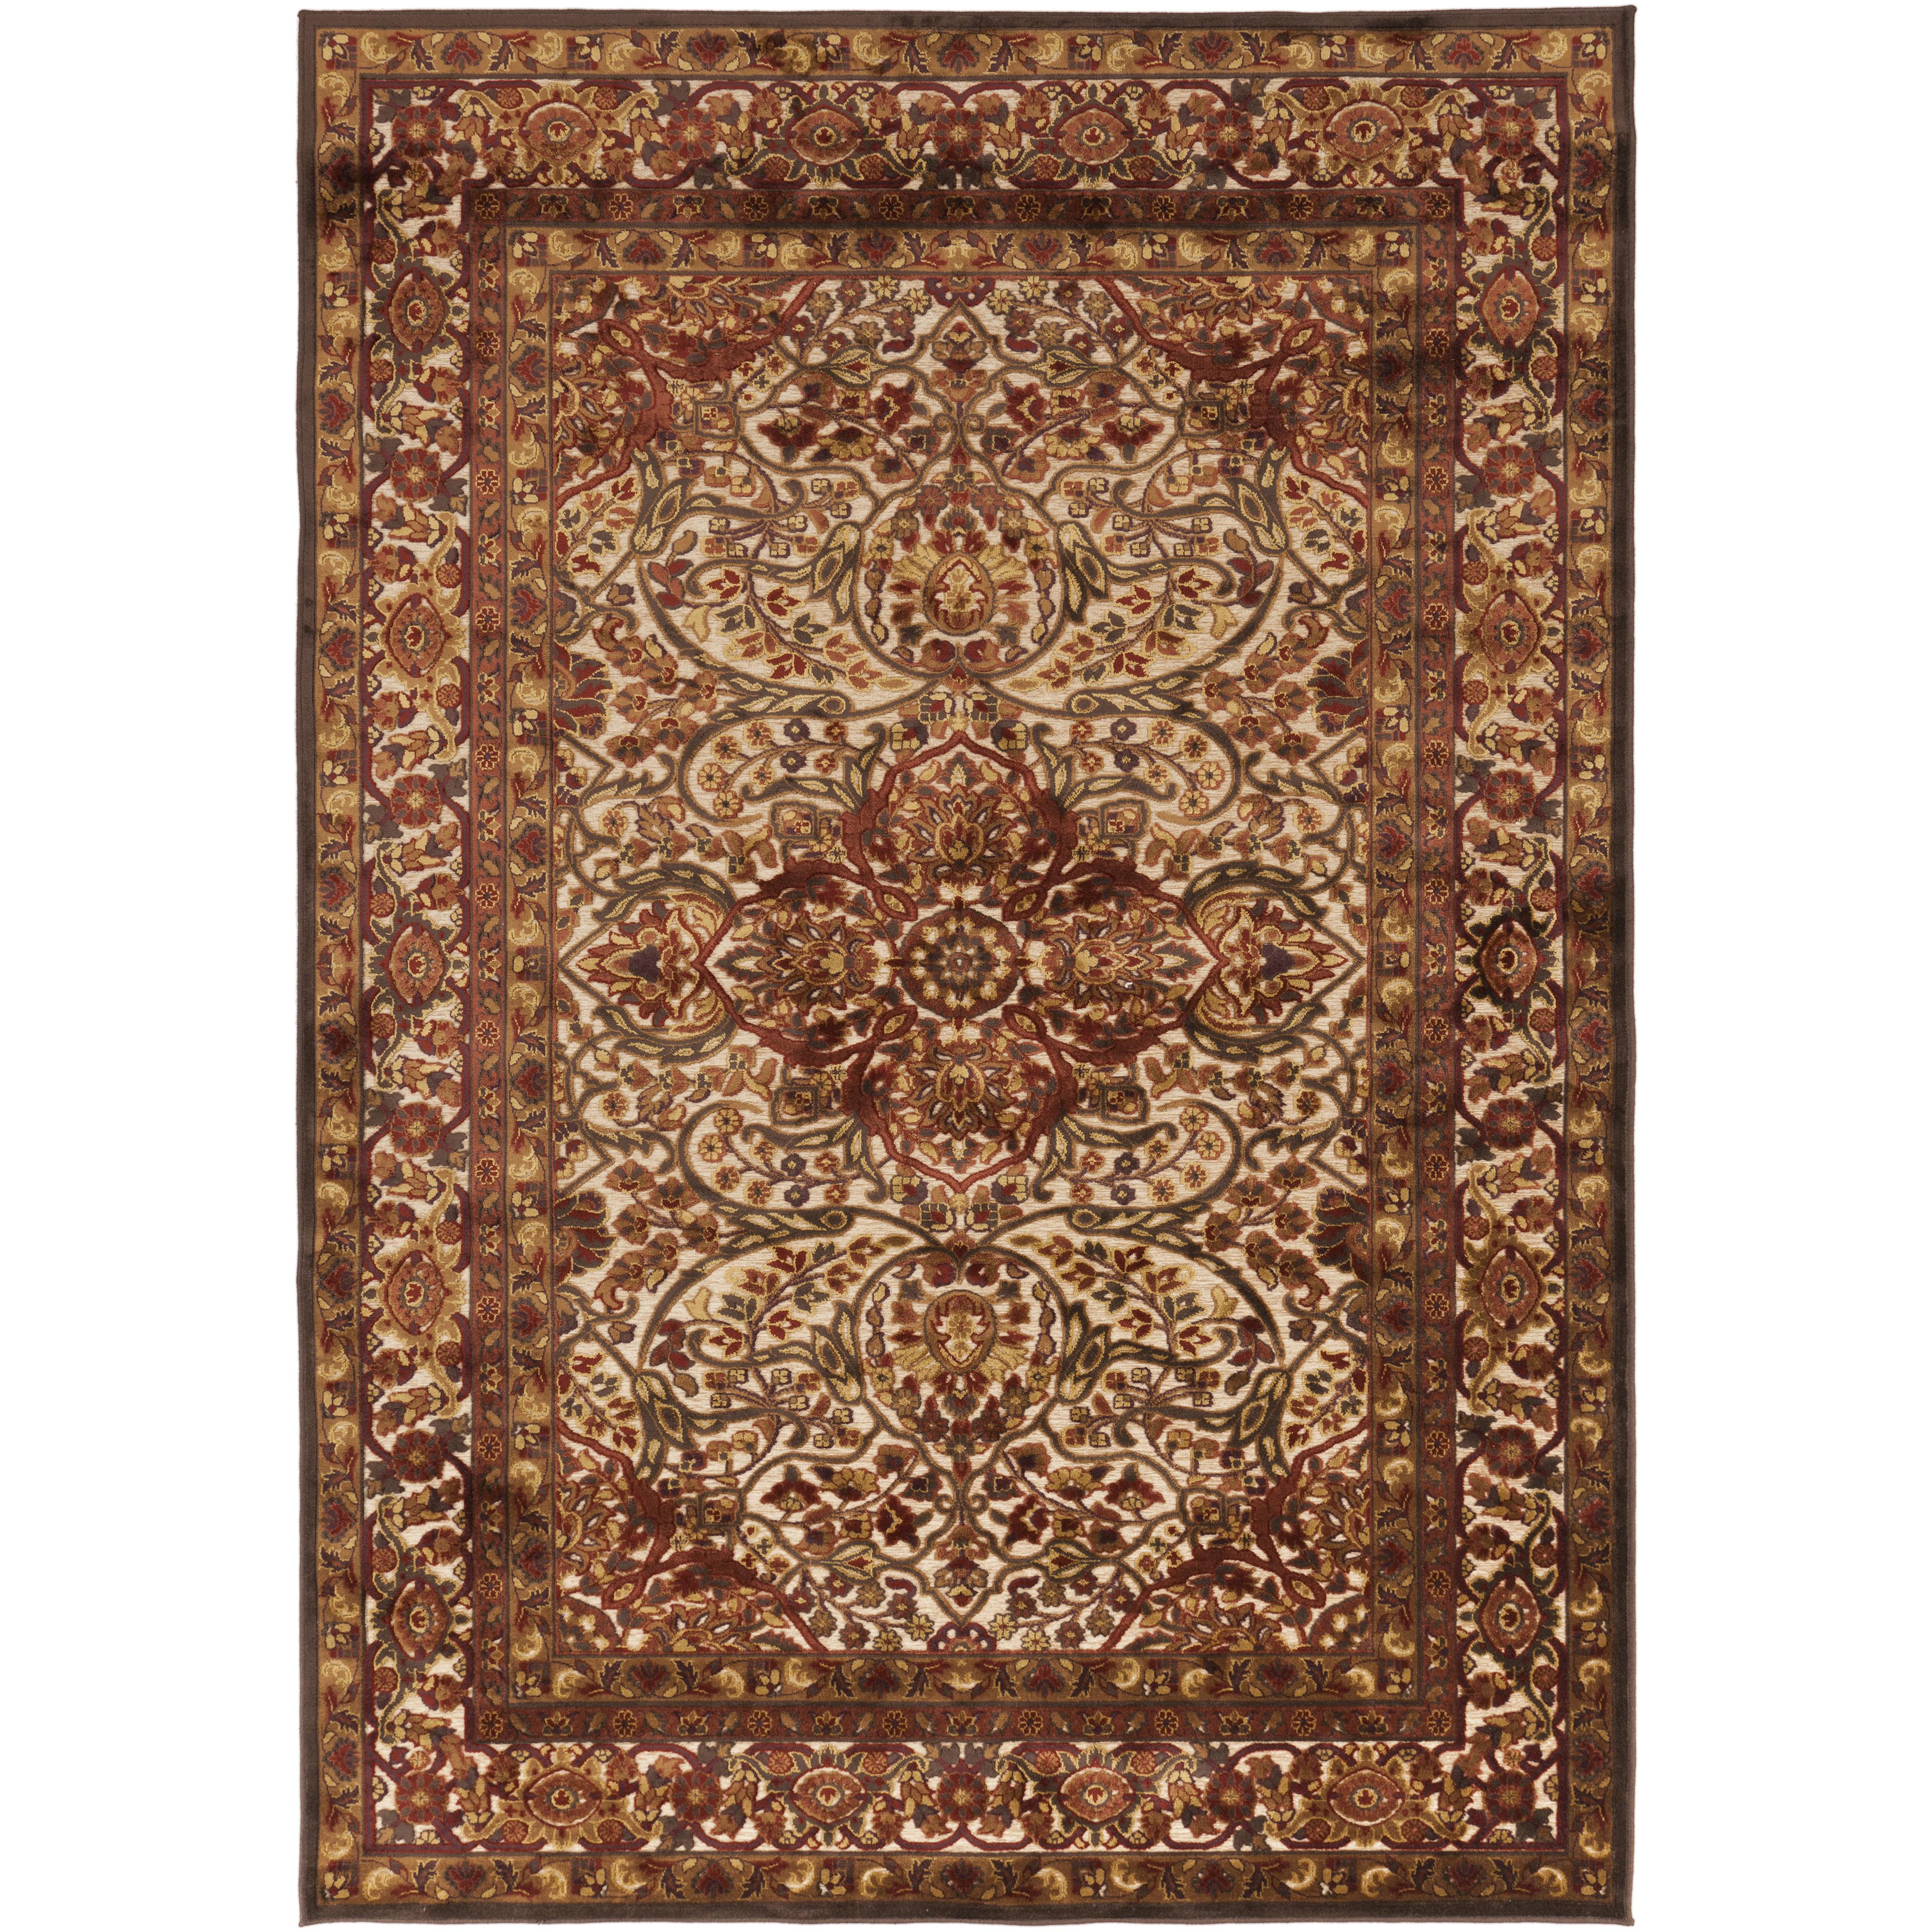 """Oriental Rugs Hagerstown Md: 5'2"""" X 7'6"""" By Surya"""